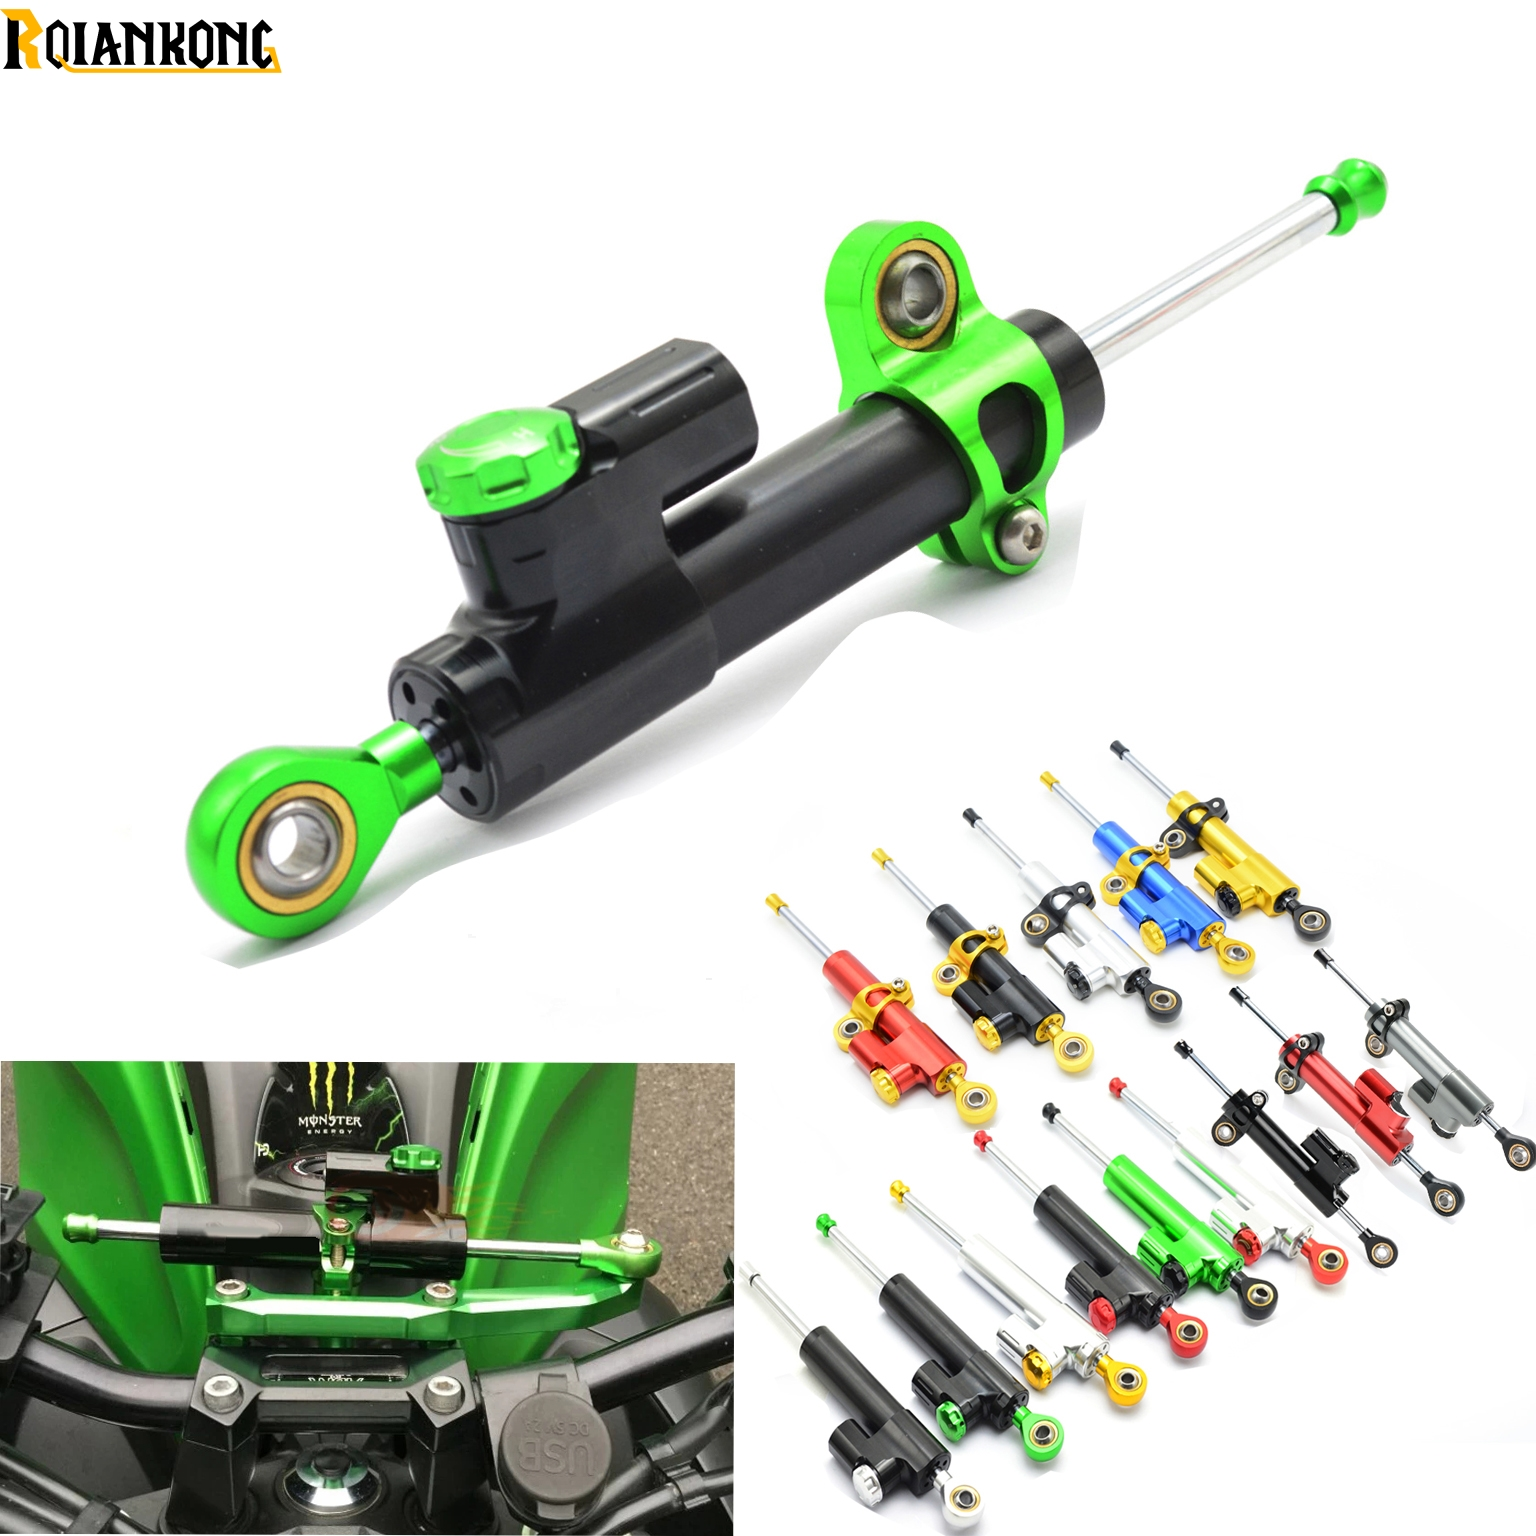 CNC Aluminum Motorcycle Steering Damper Stabilizer Linear Safe Control for Kawasaki Ninja ZX6 ZX6R ZX7R ZX9R ZX12R ZX14R ZX500R cnc aluminum motorcycle rear license plate mount holder with led light for kawasaki ninja zx6 zx6r zx7r zx9r zx12r zx14r zx500r